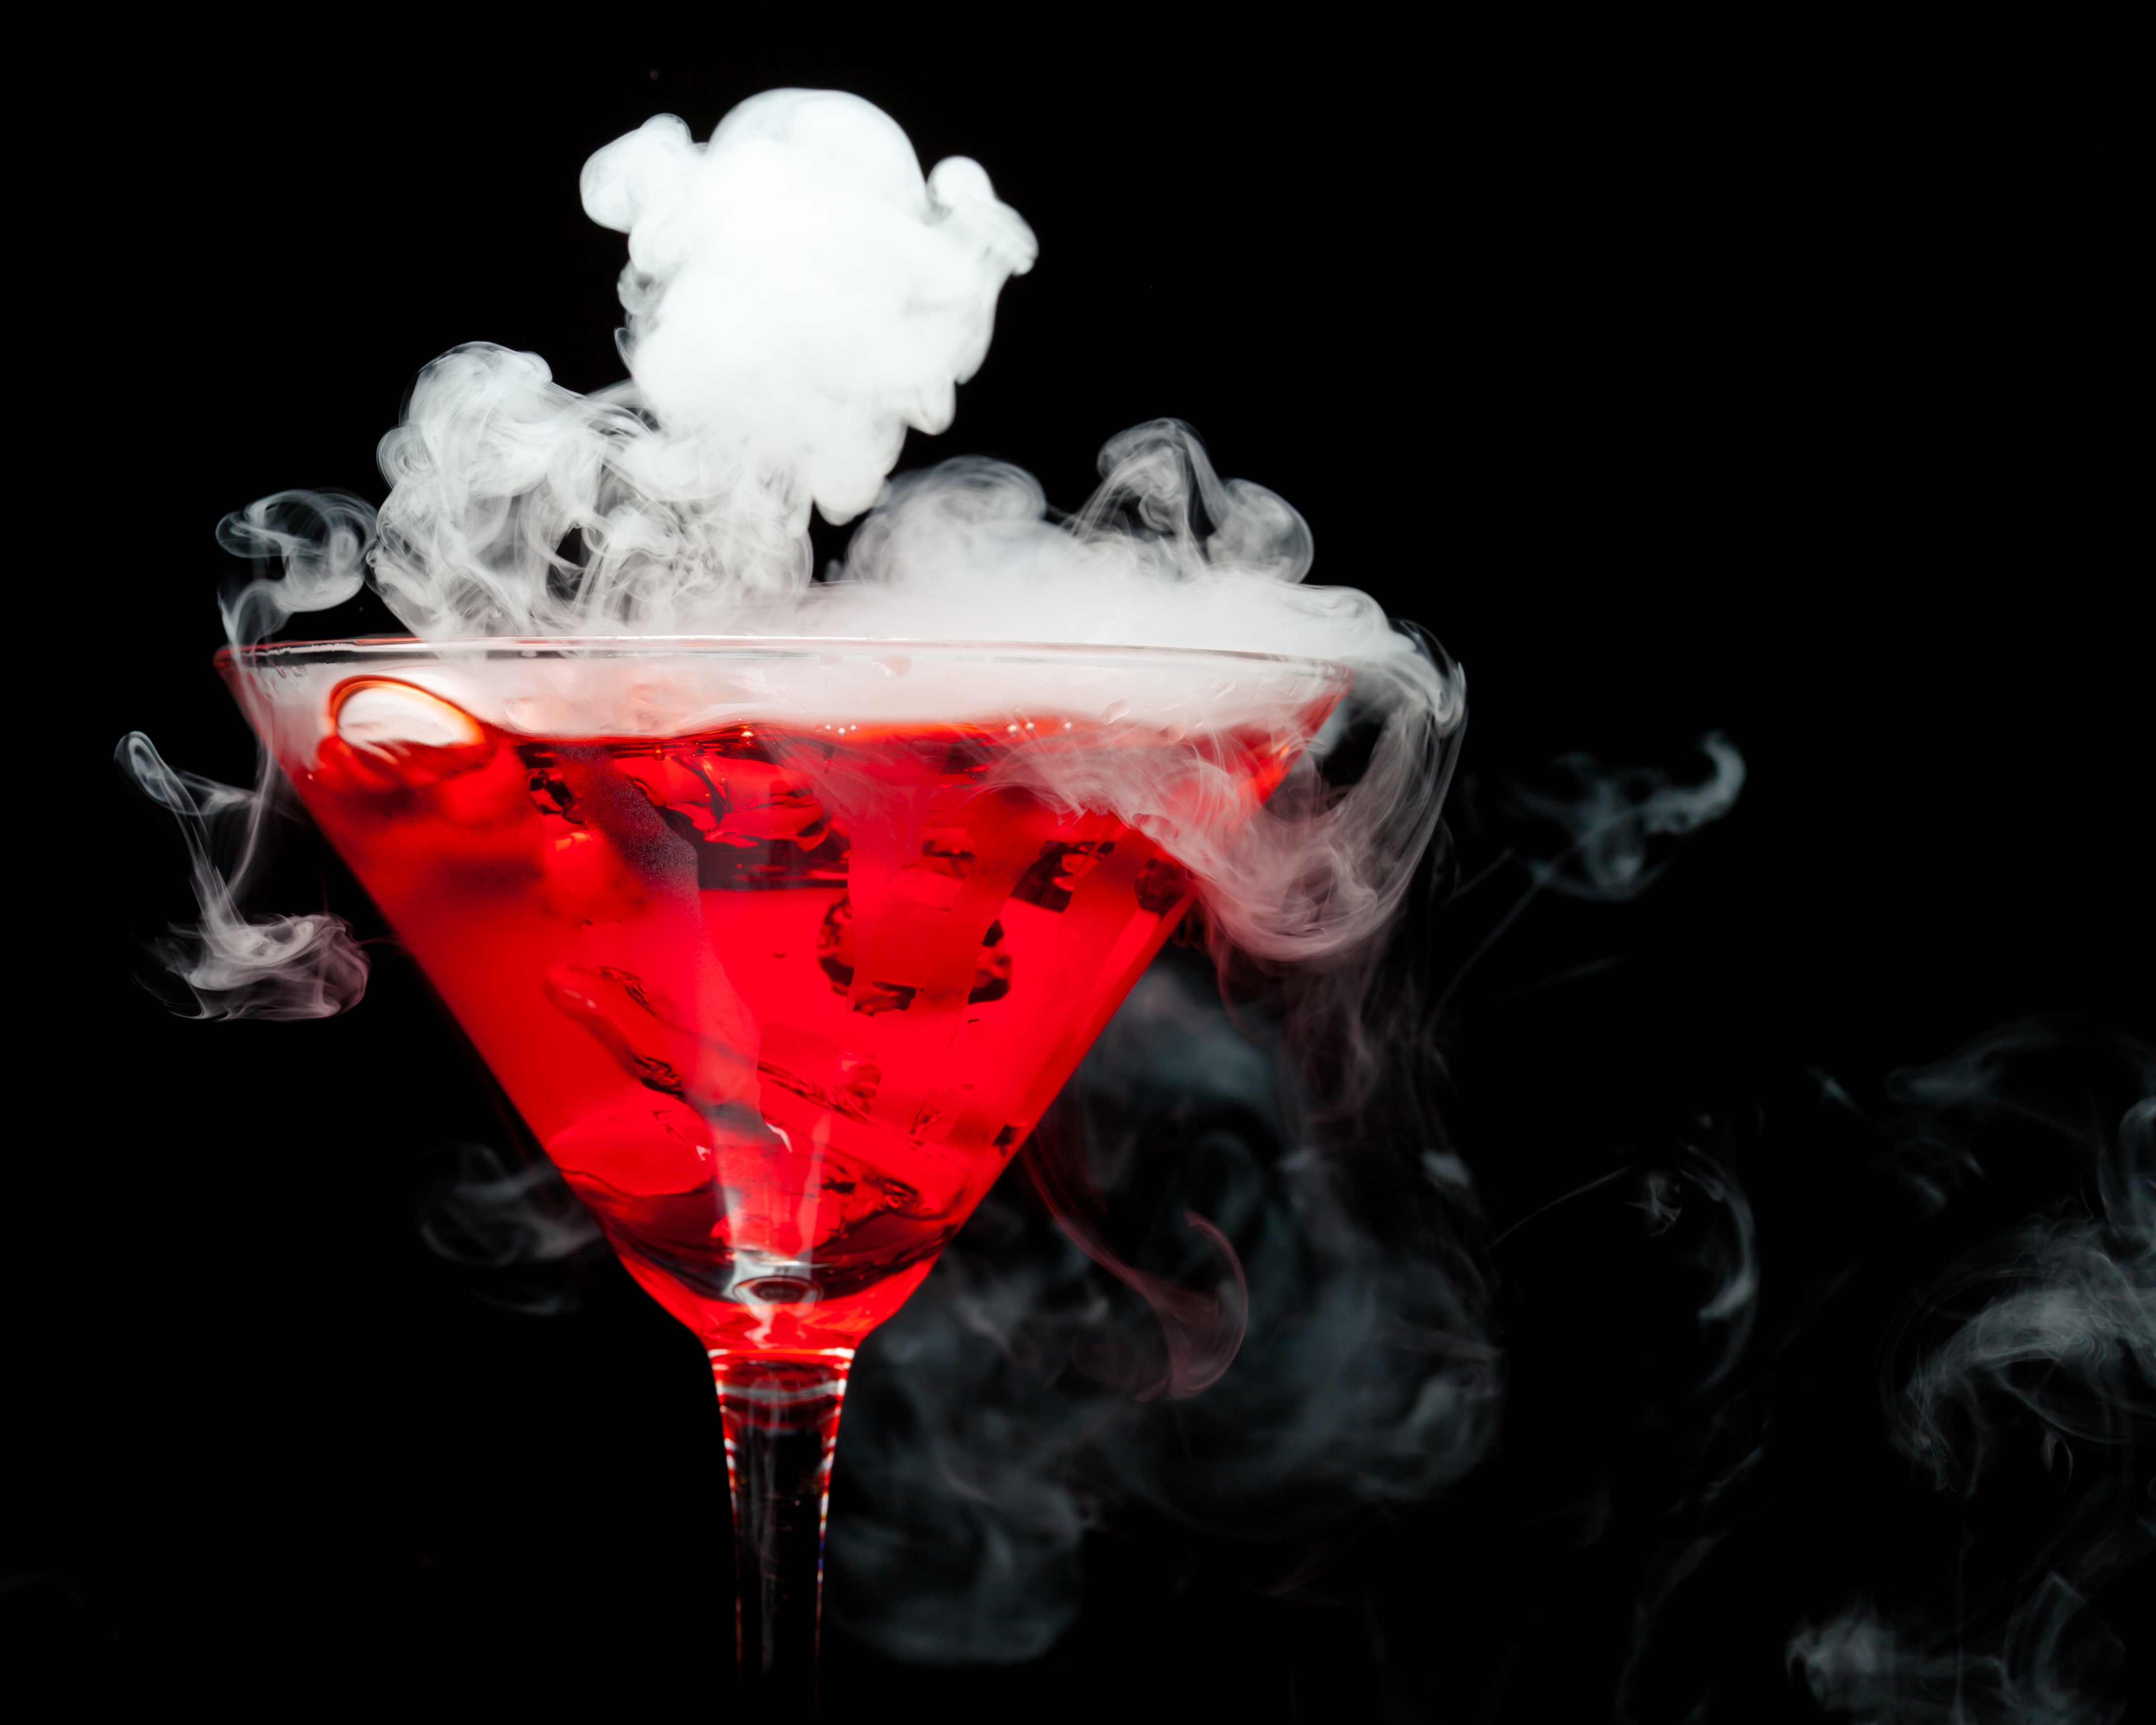 toxic cocktail made with liquid nitrogen sends florida